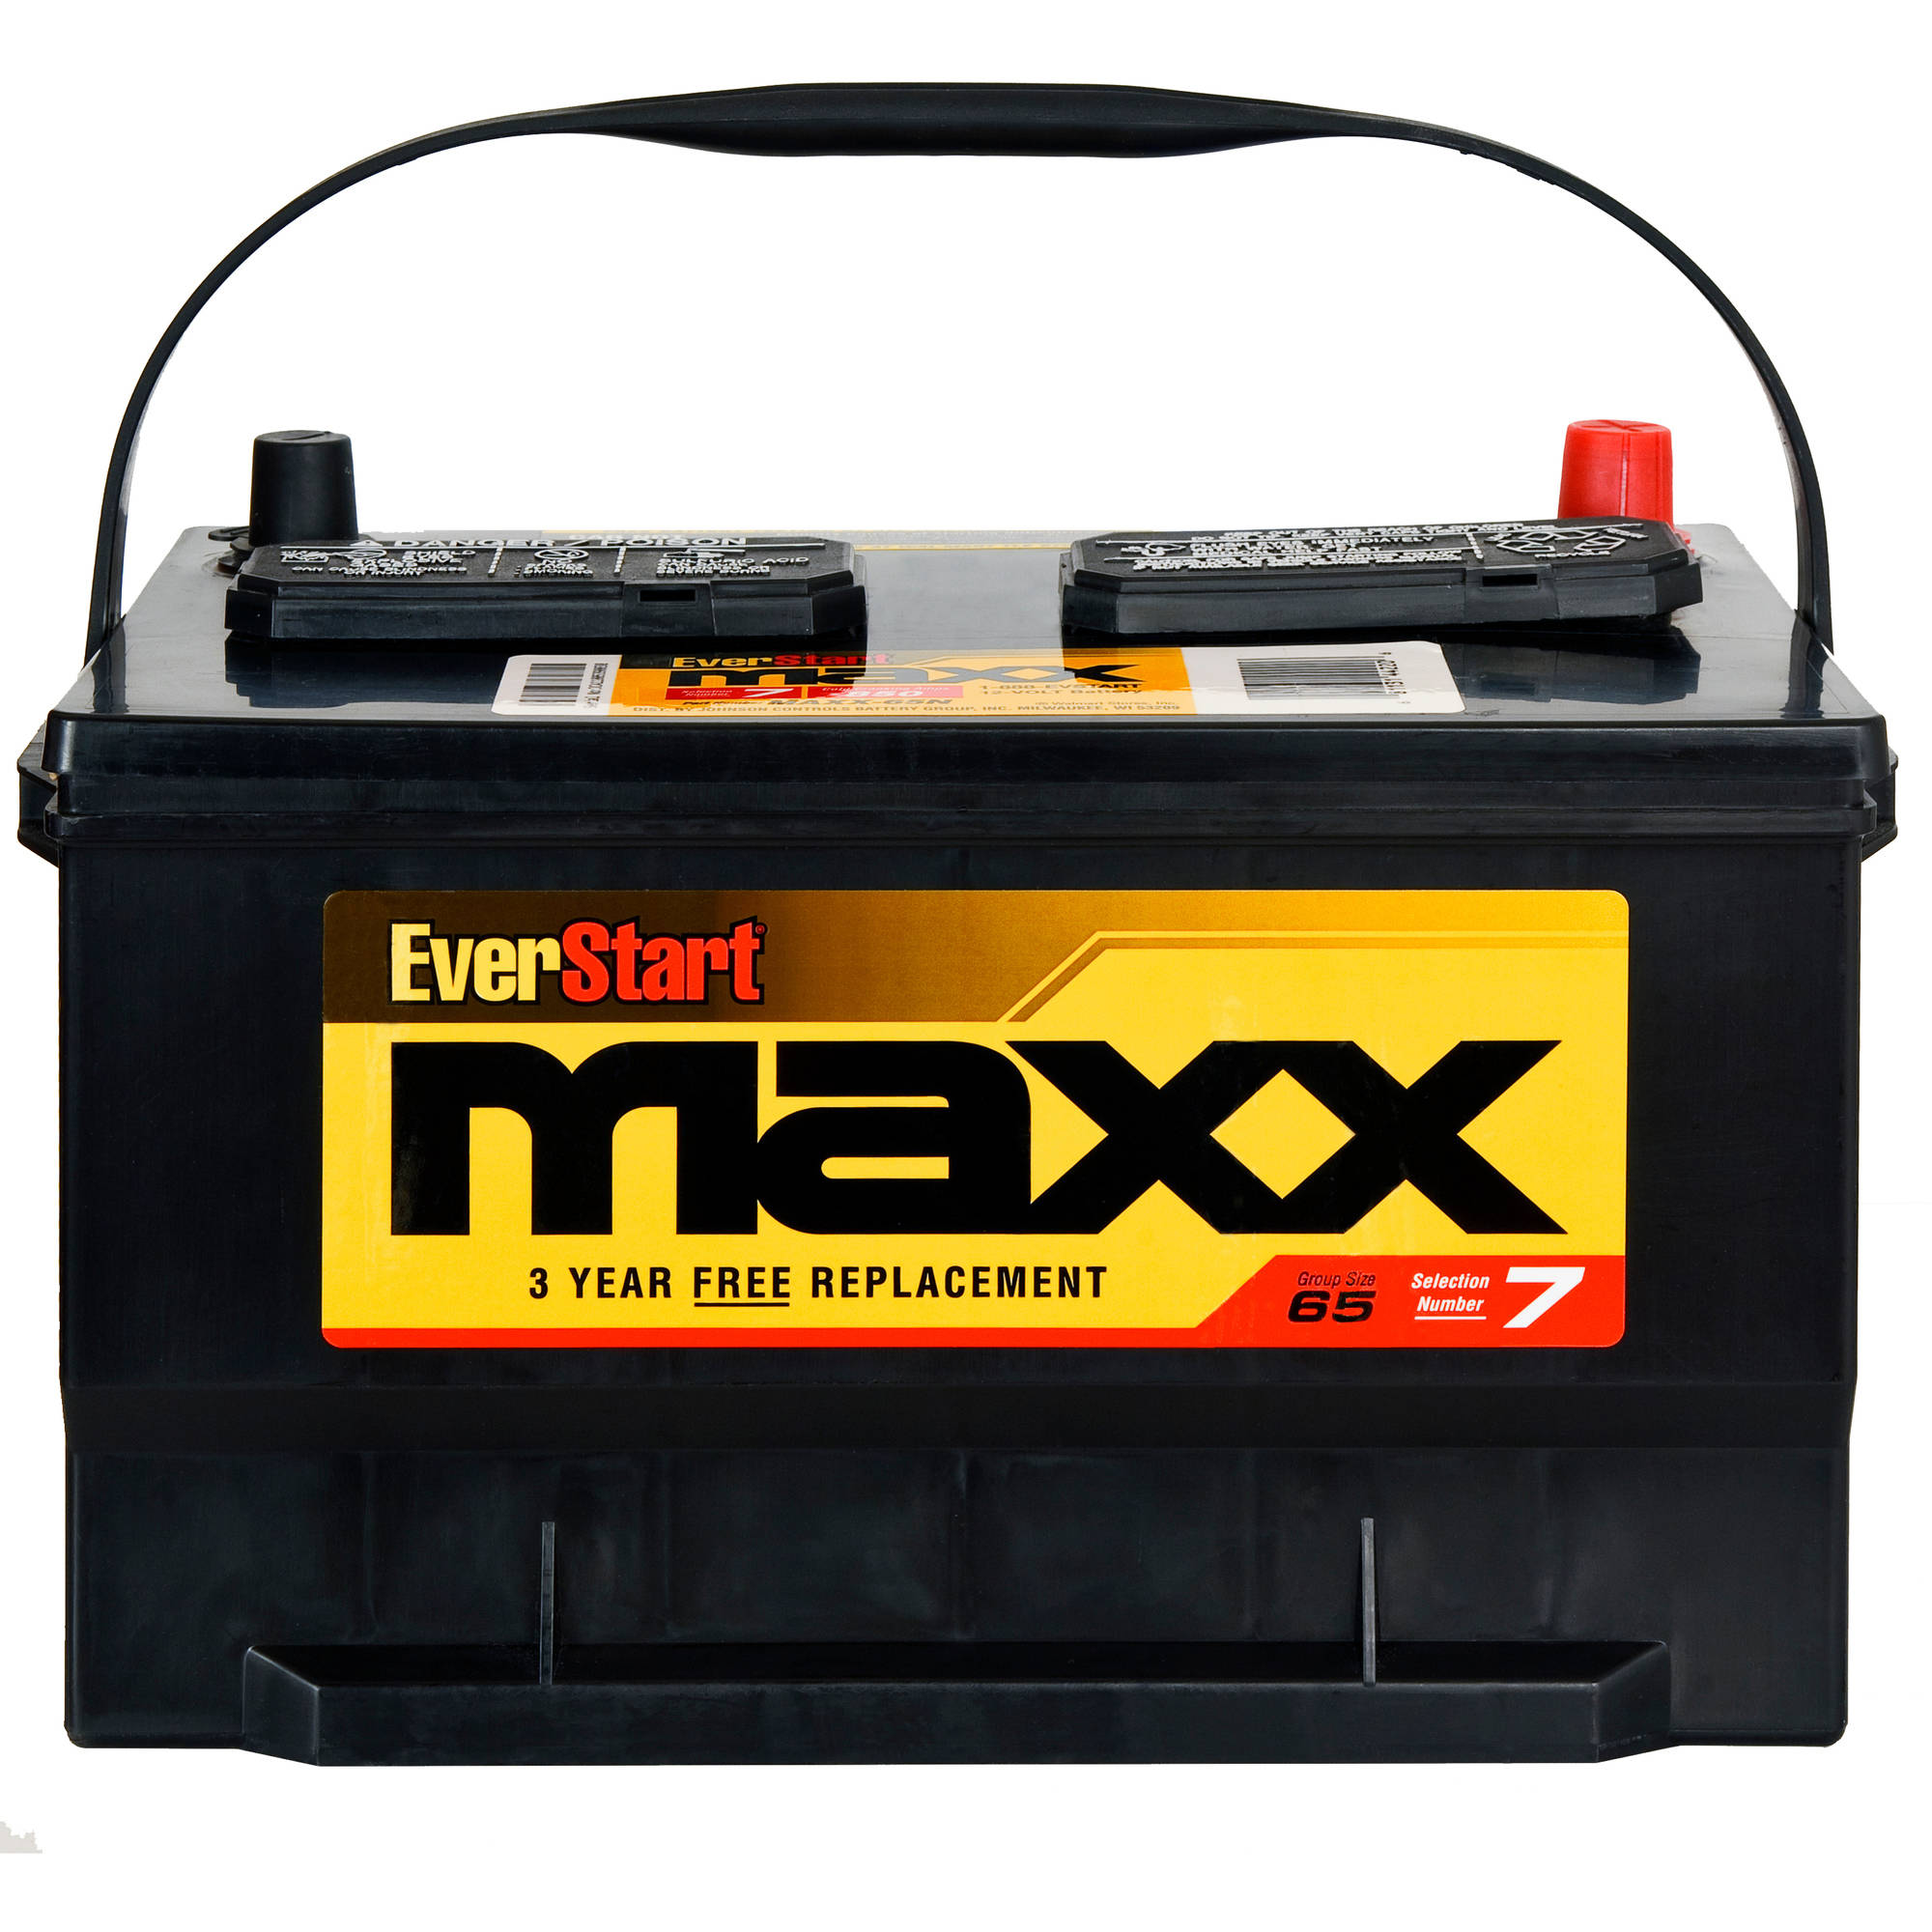 Everstart Maxx Lead Acid Automotive Battery Group Size 65n